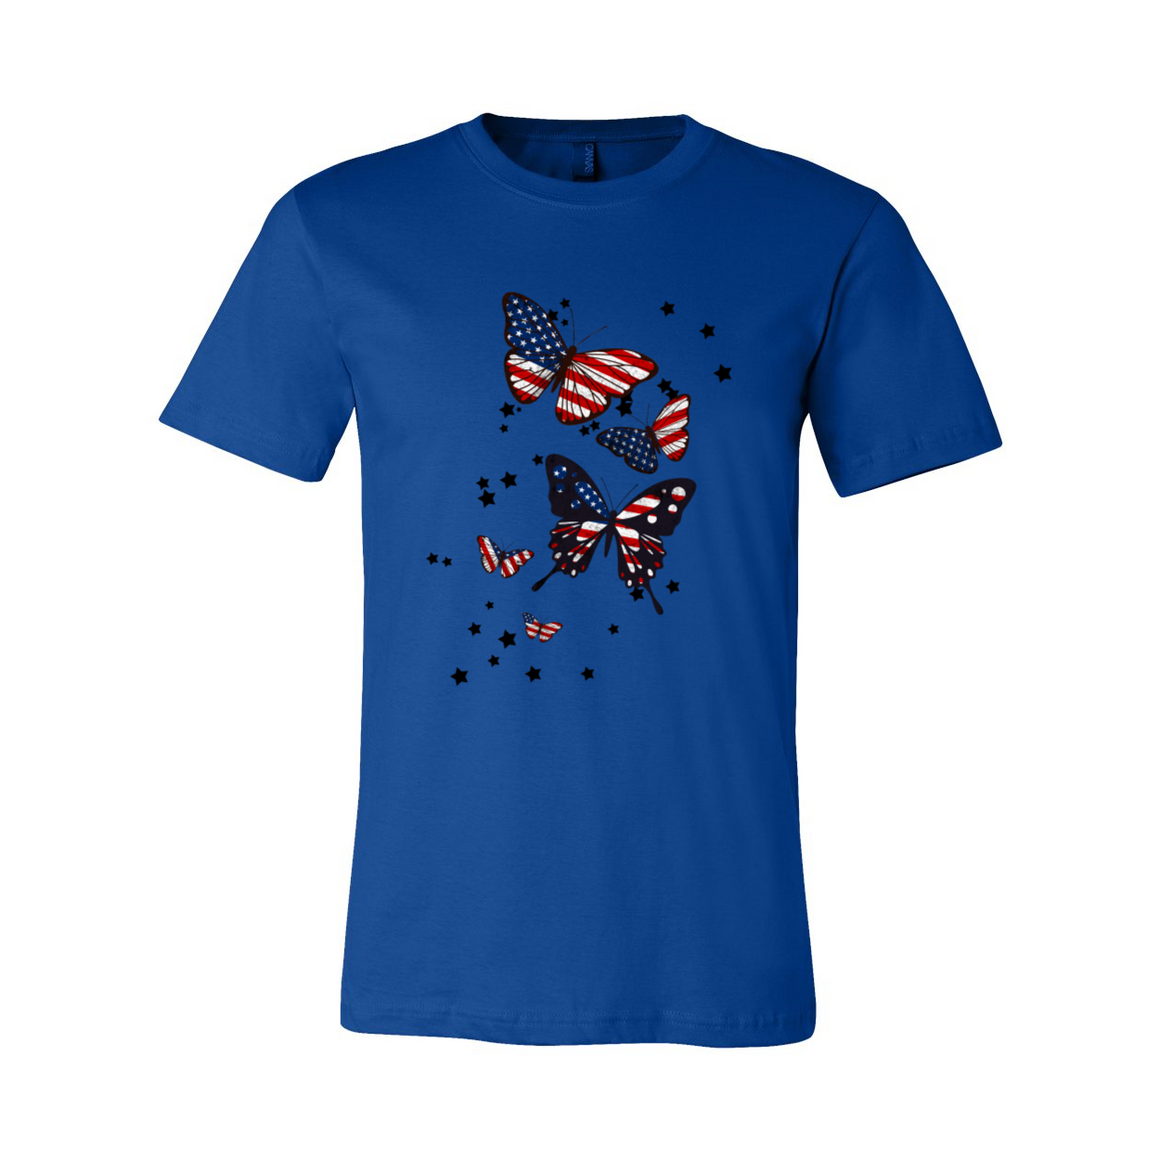 Red White & Blue Patriotic Butterflies Tshirt